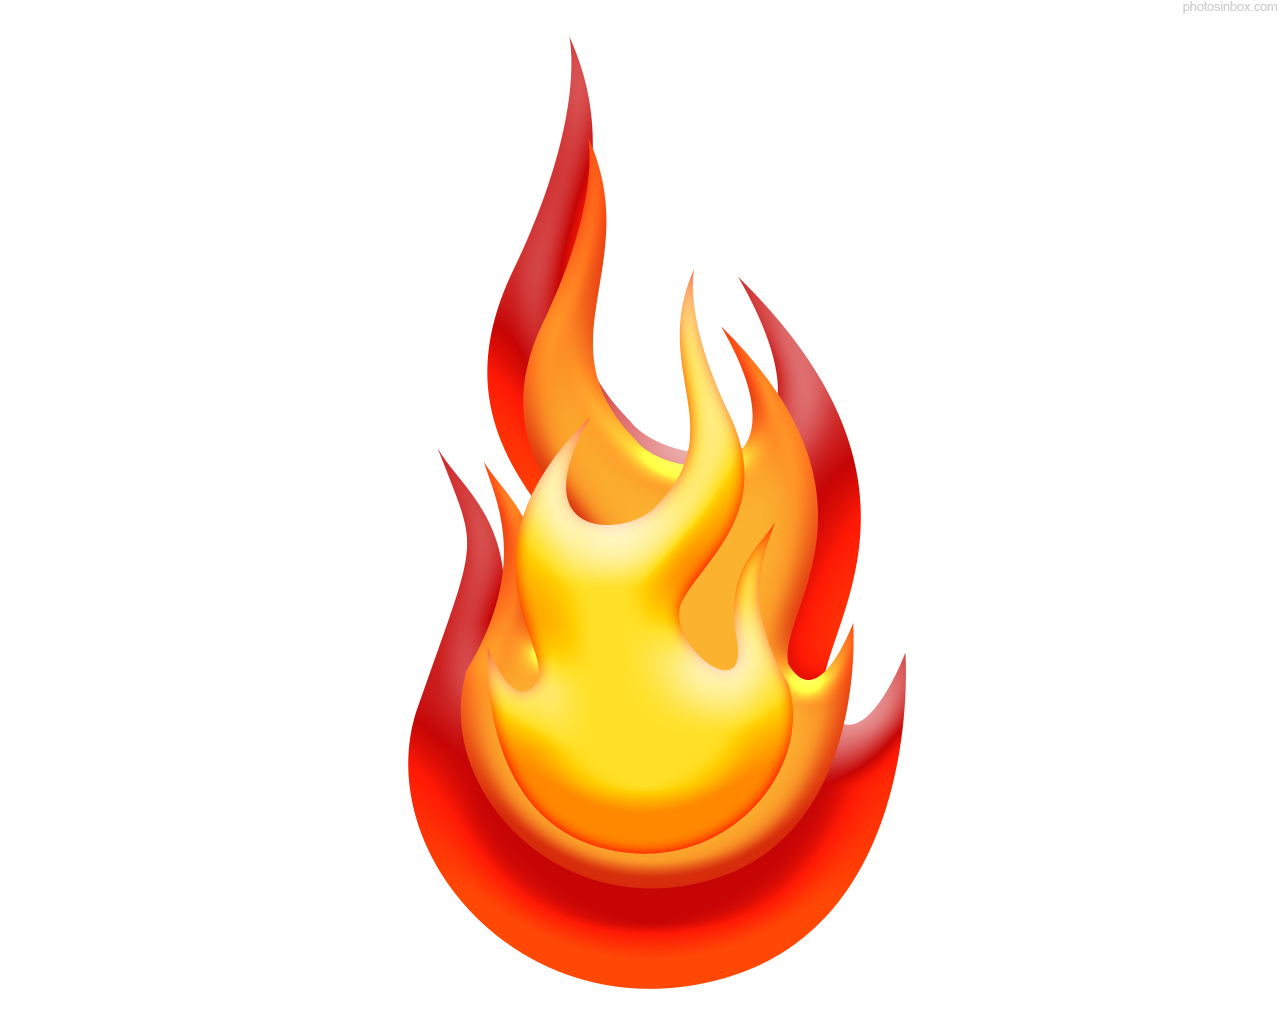 Real fire clipart vector transparent download Flame Clipart Border | Clipart Panda - Free Clipart Images vector transparent download